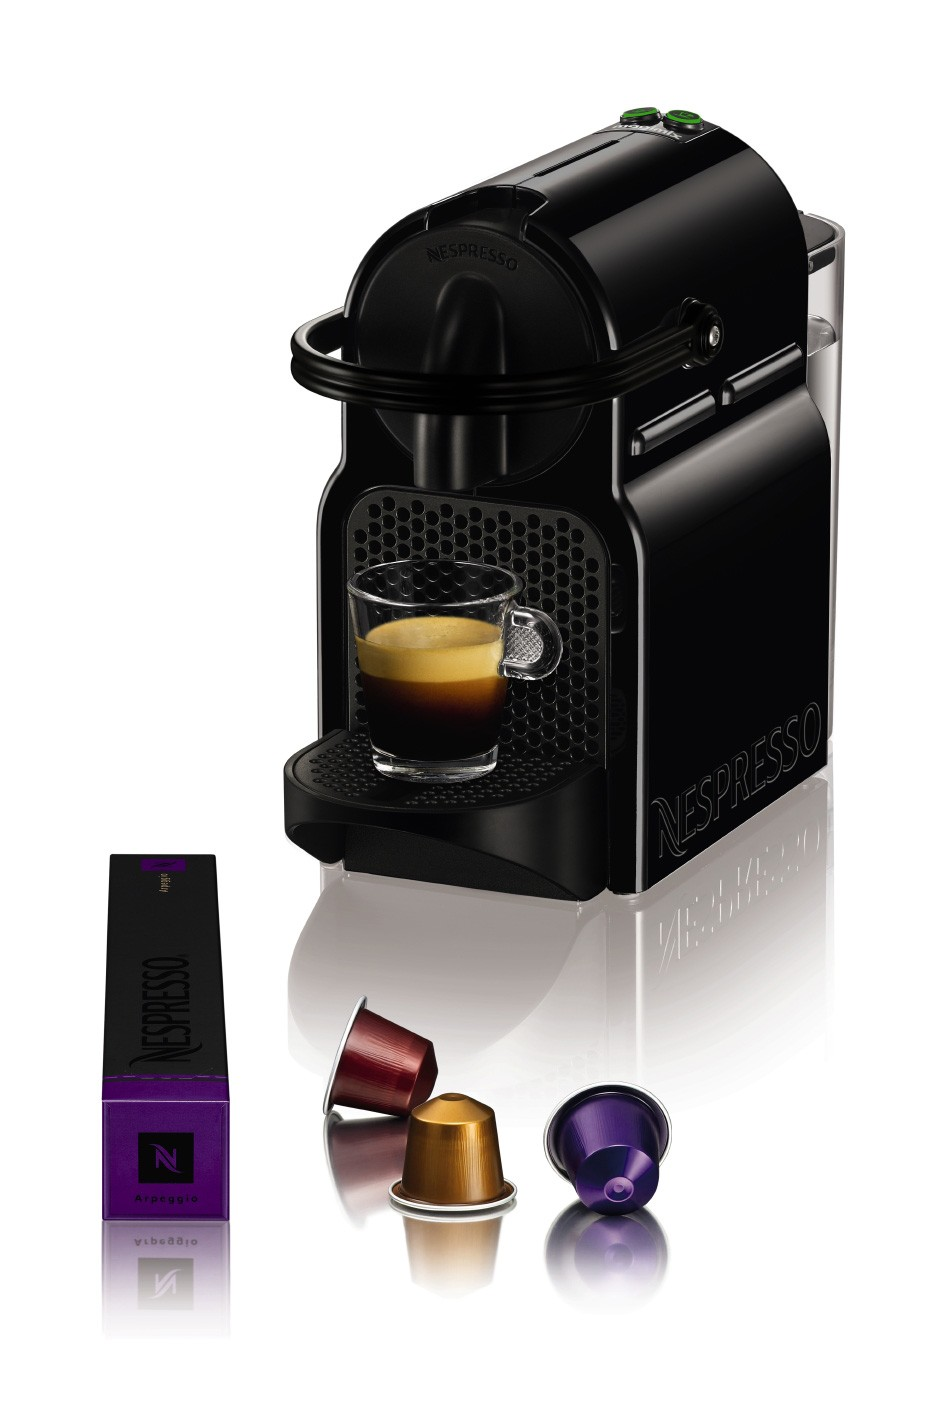 magimix nespresso inissia m105 noir 11350. Black Bedroom Furniture Sets. Home Design Ideas